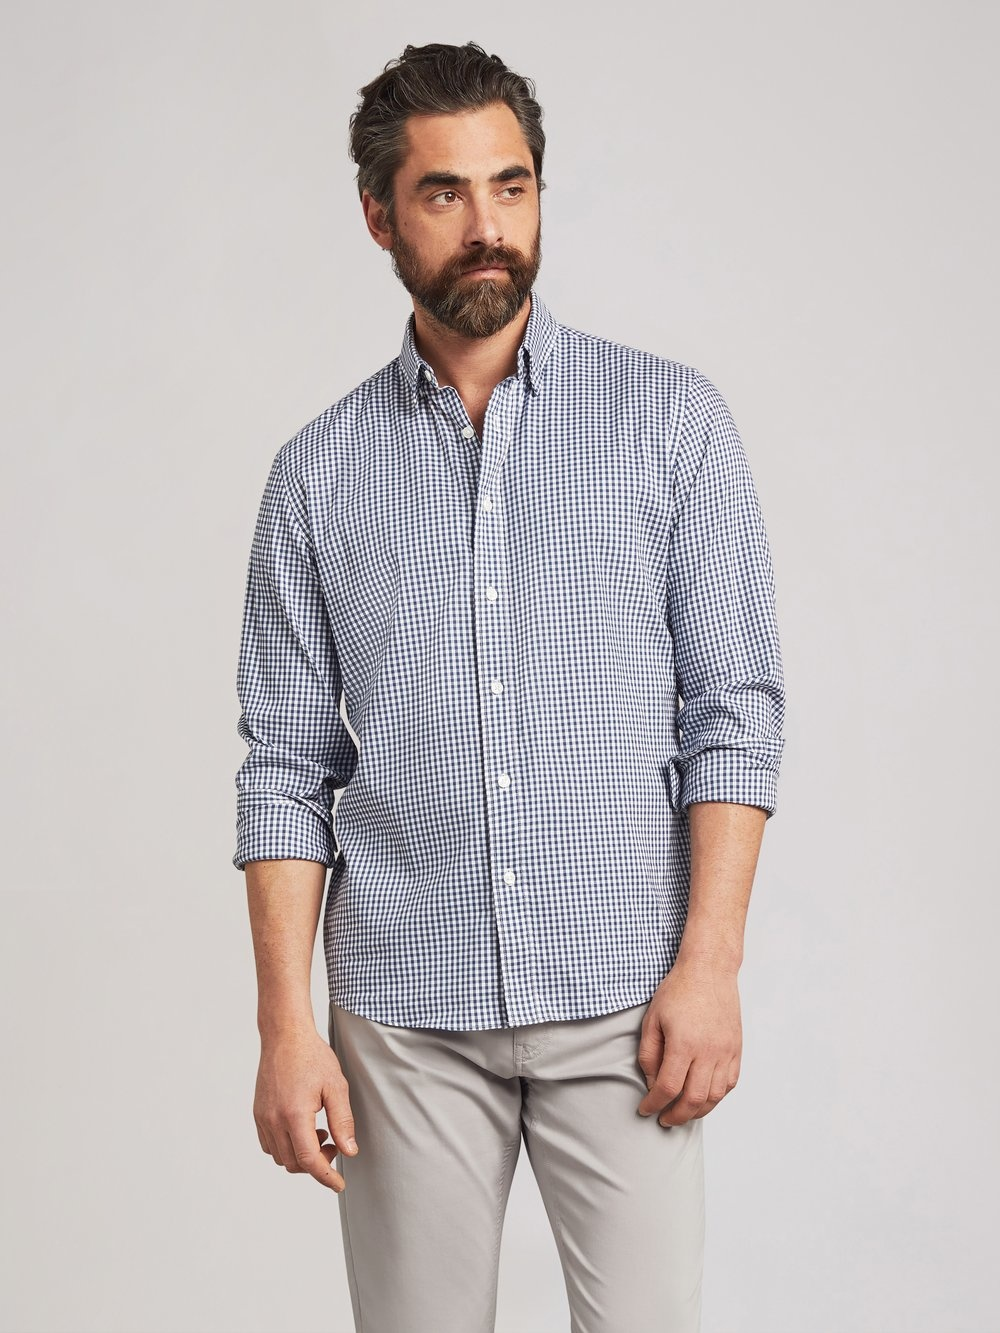 Faherty Faherty Movement Shirt - MULTIPLE COLORS